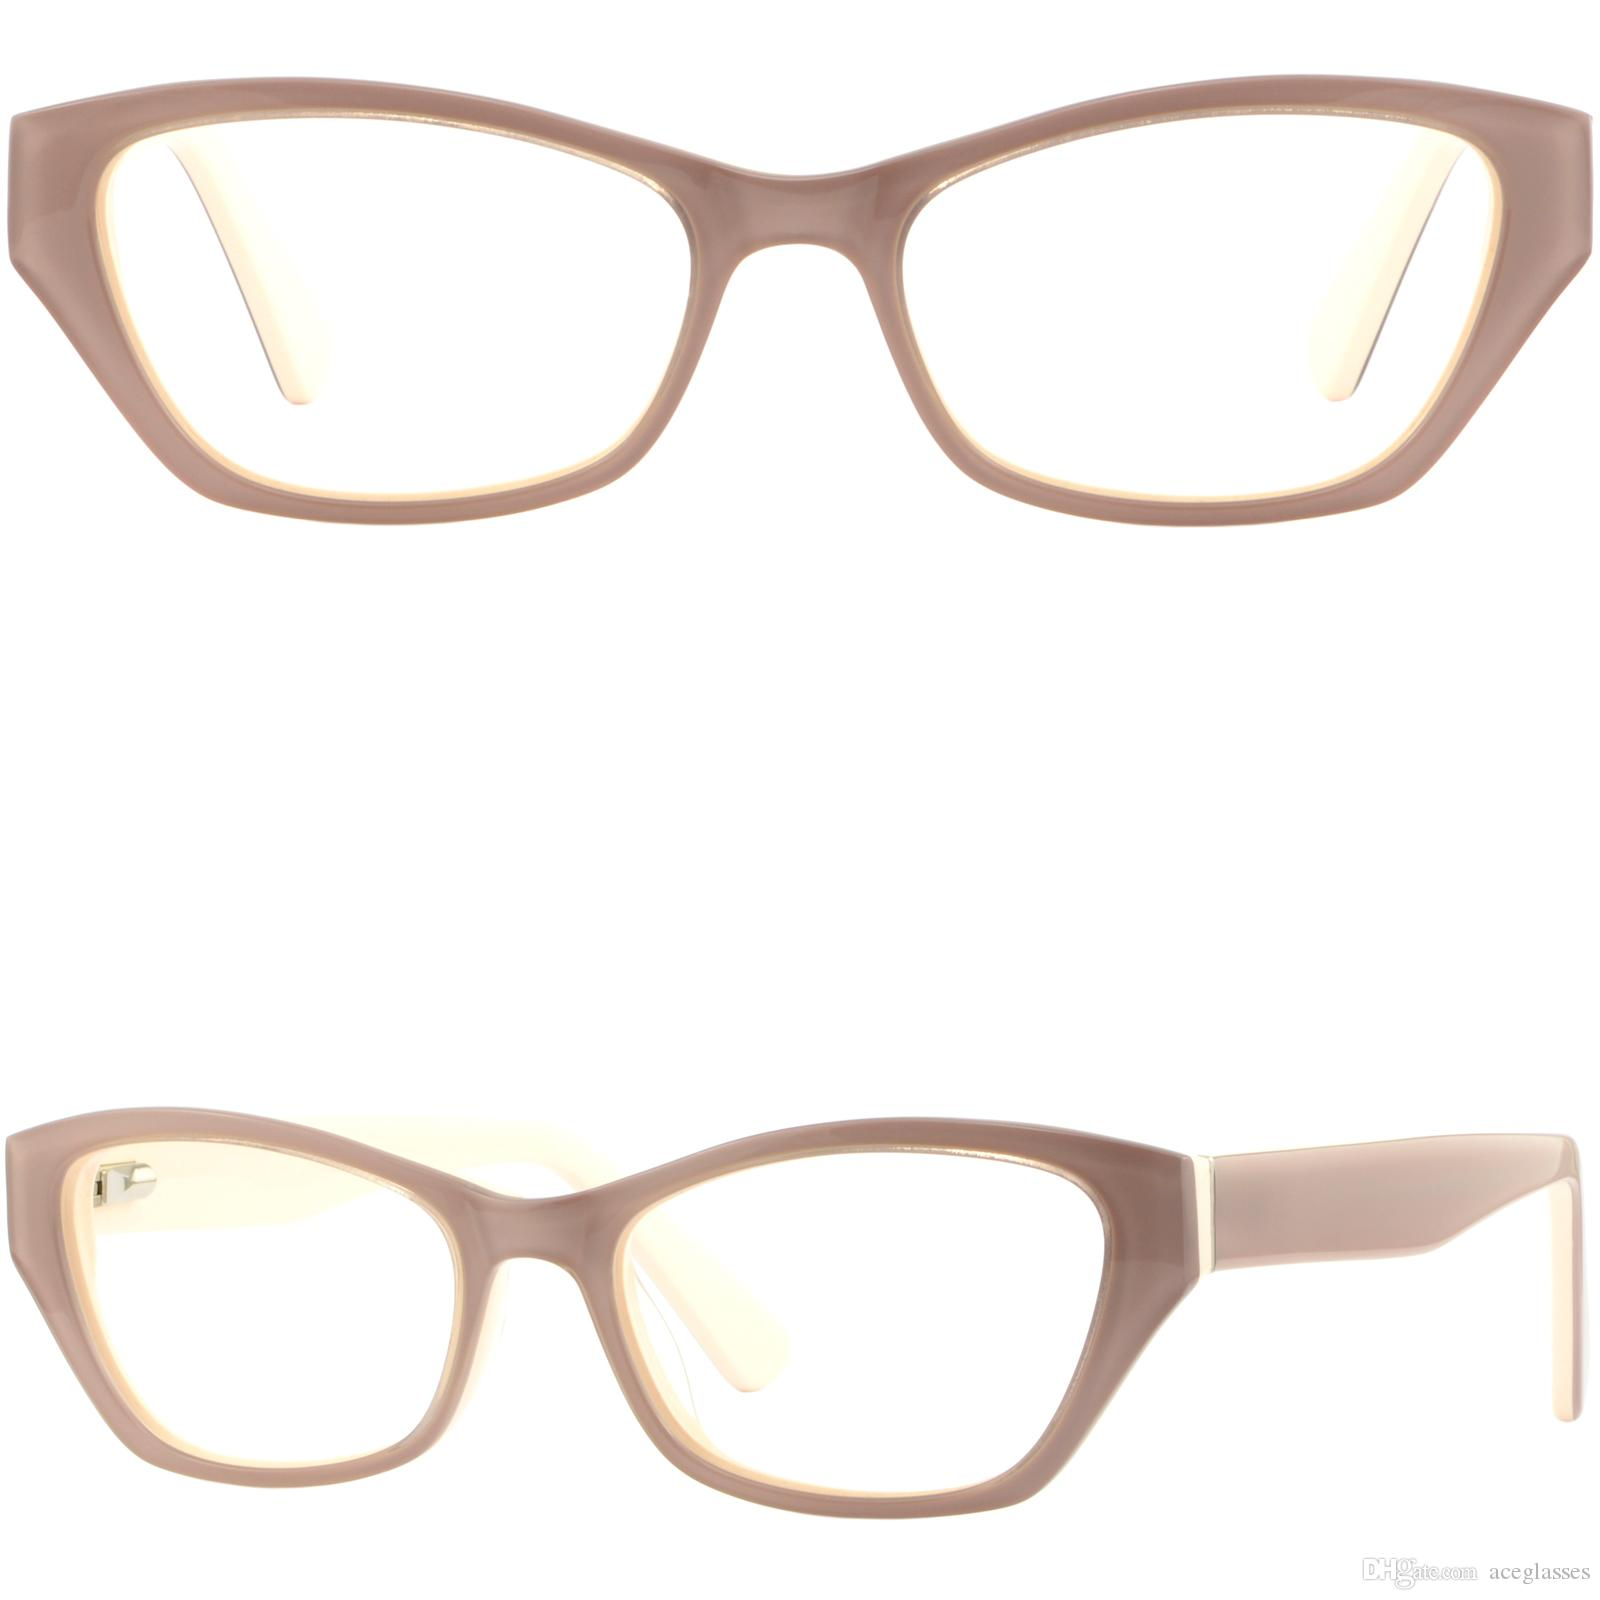 873b1007cf Cateye Women s Acetate Plastic Frames Cat Eye Prescription Glasses ...